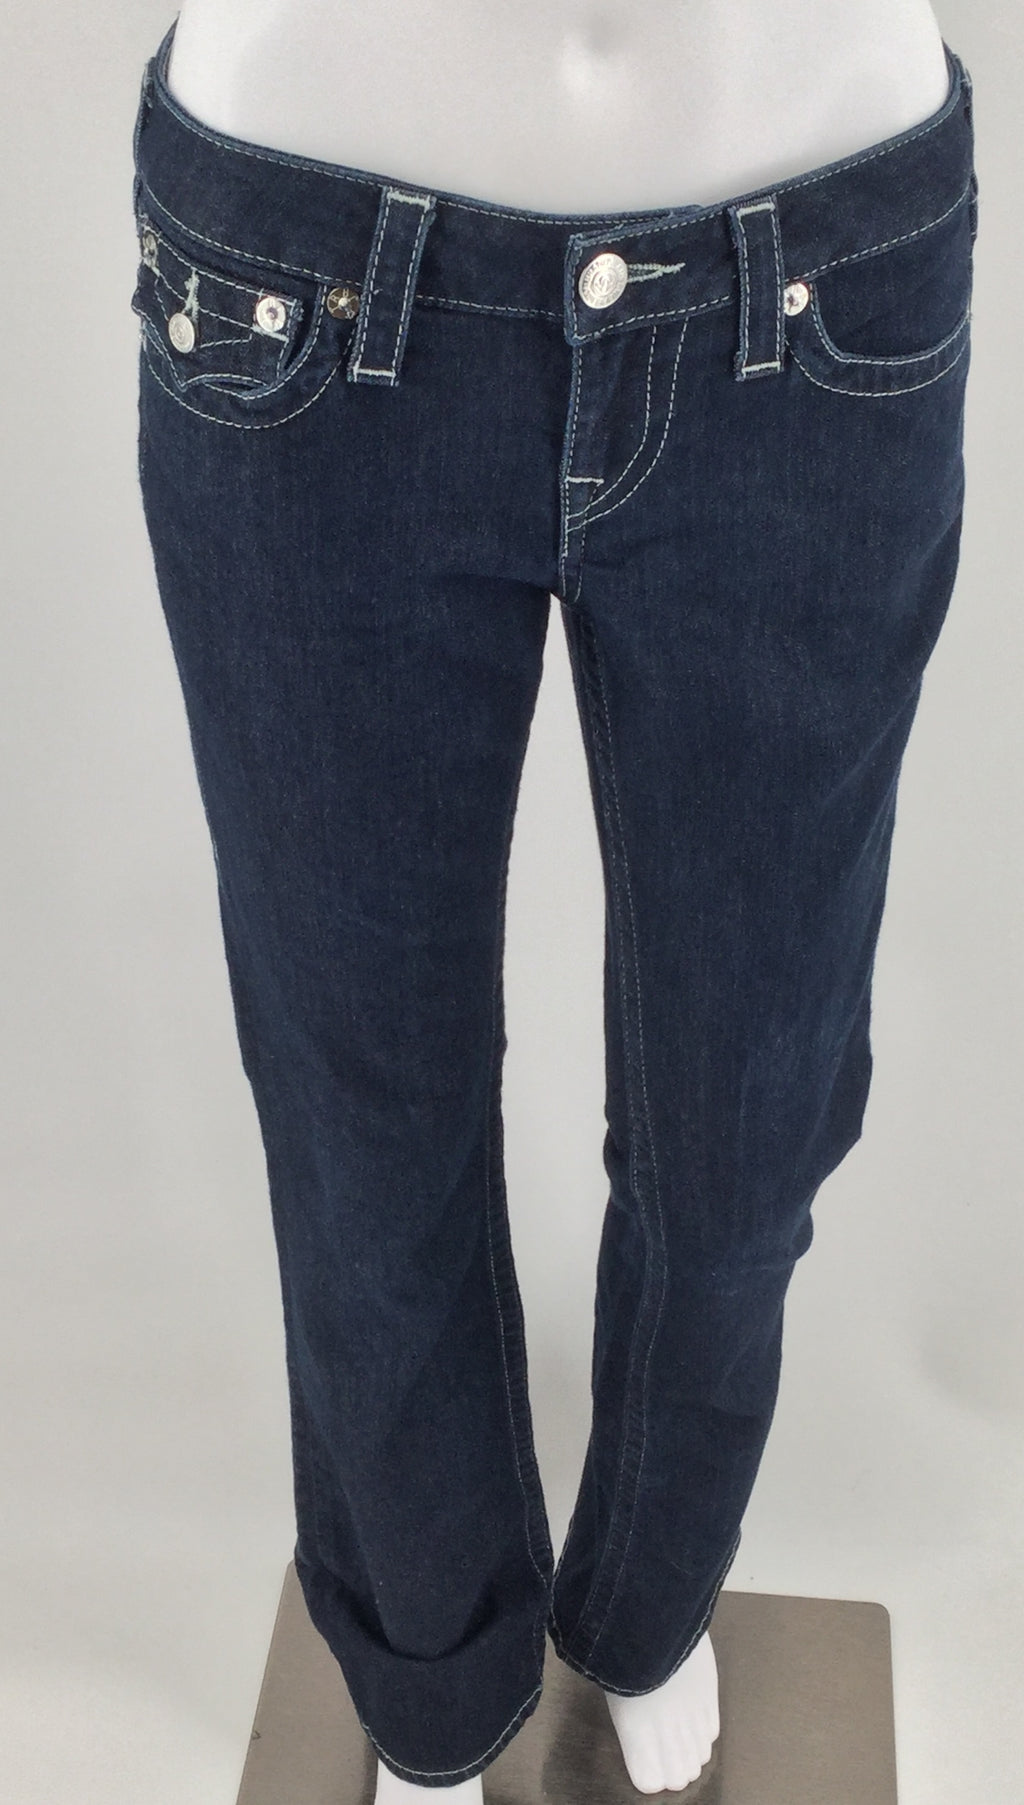 True Religion Dark Wash Jeans Size 4